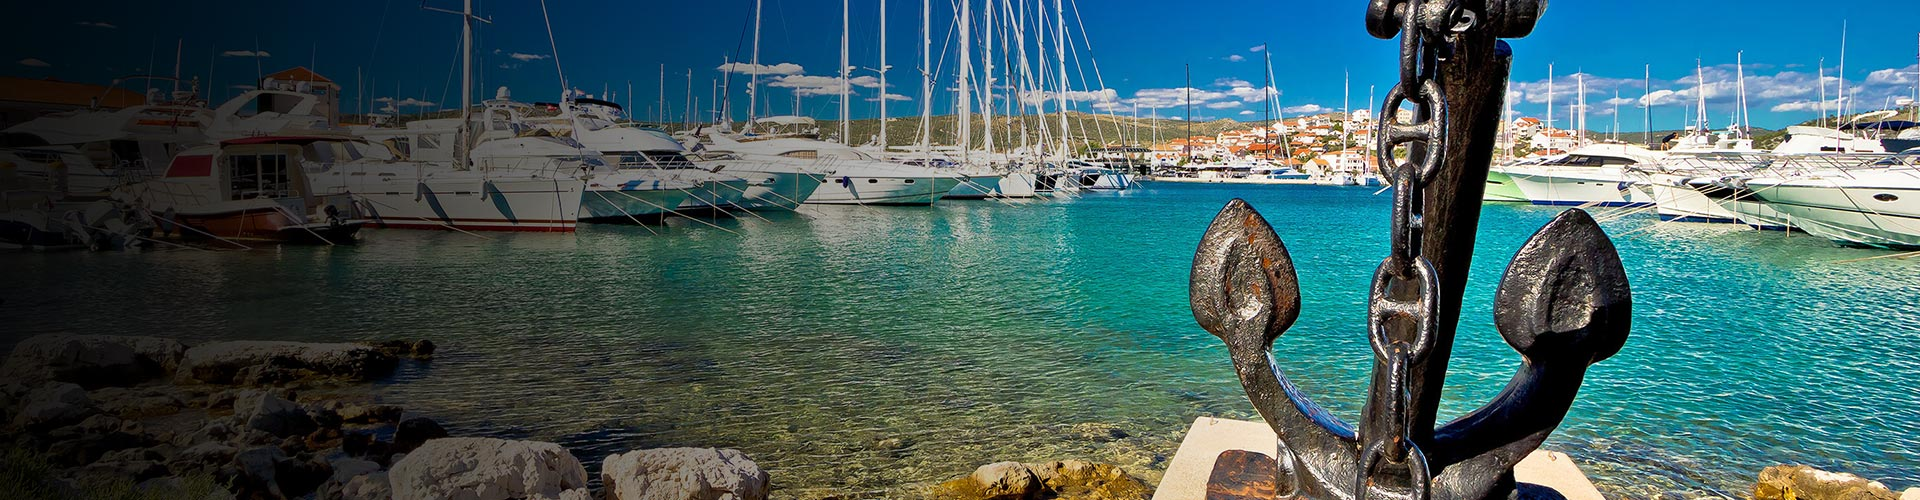 All yachts, catamarans and boat rentals on the Adriatic Sea, as well as all other services and info on sailing in Croatia.